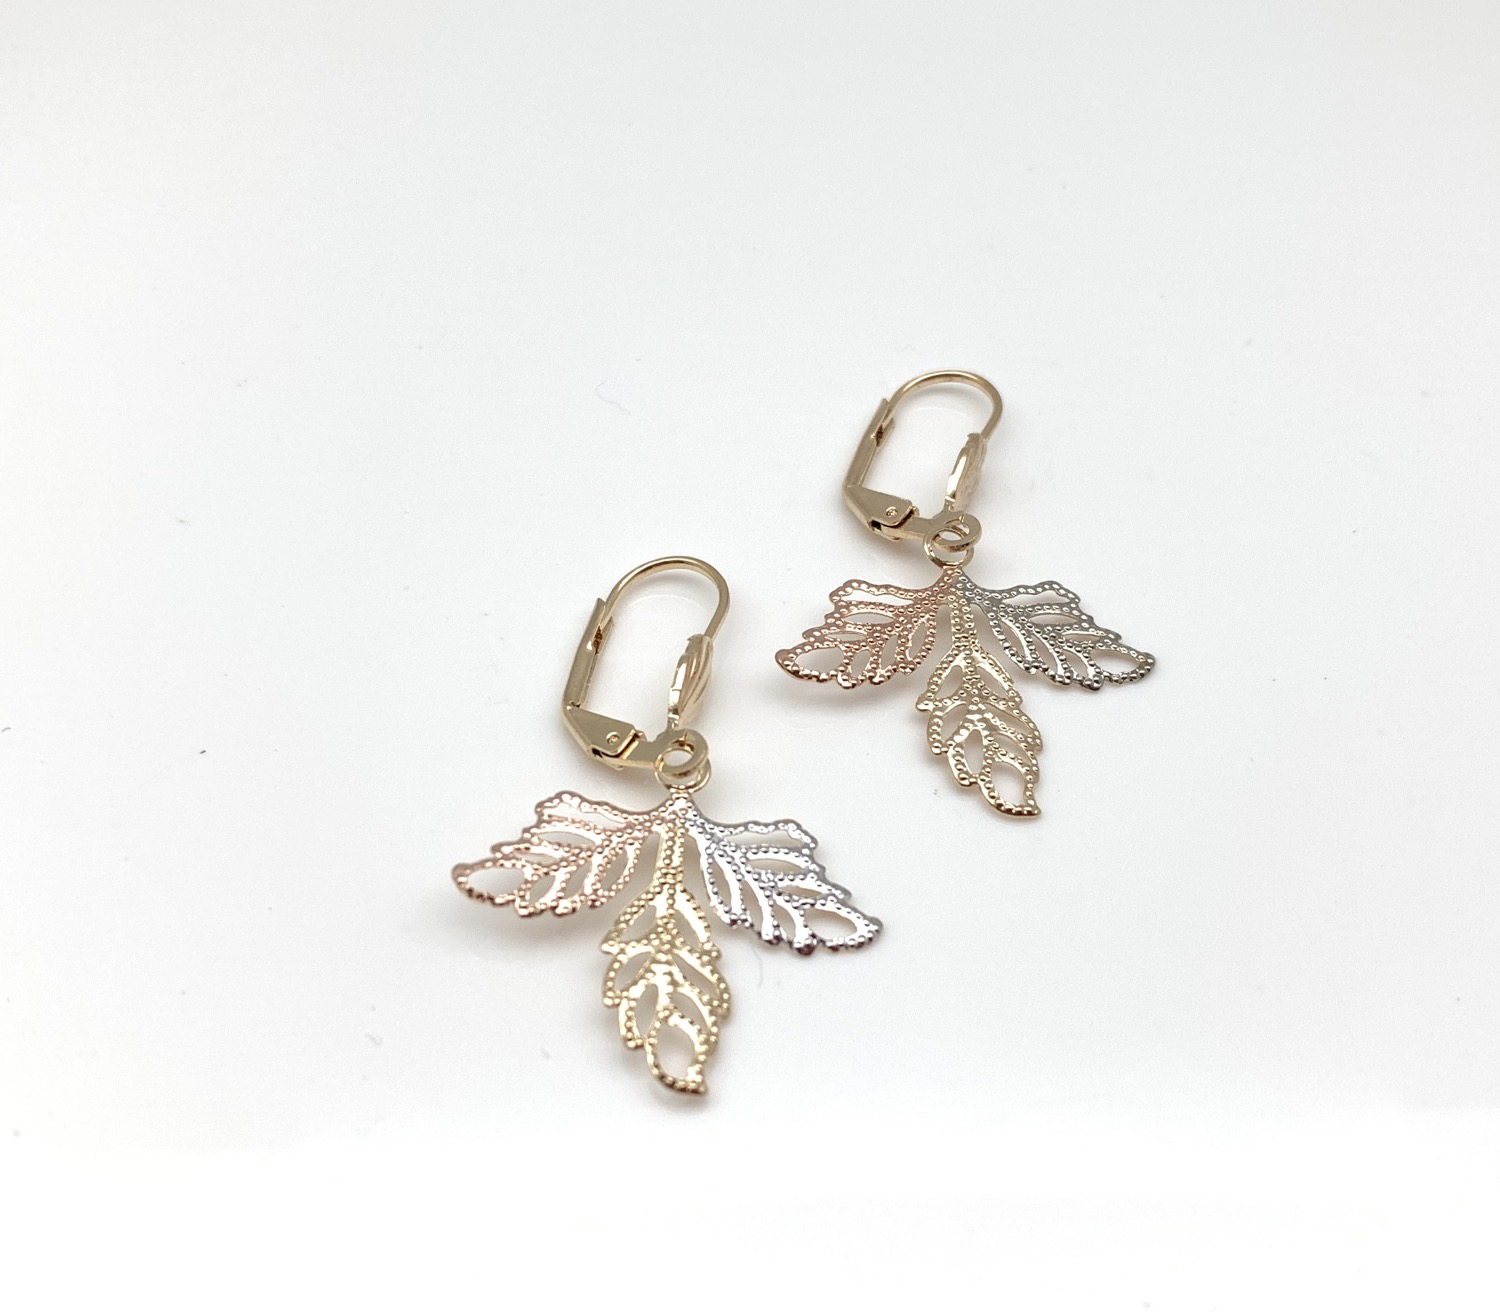 H131 Tricolor Leaf Earrings